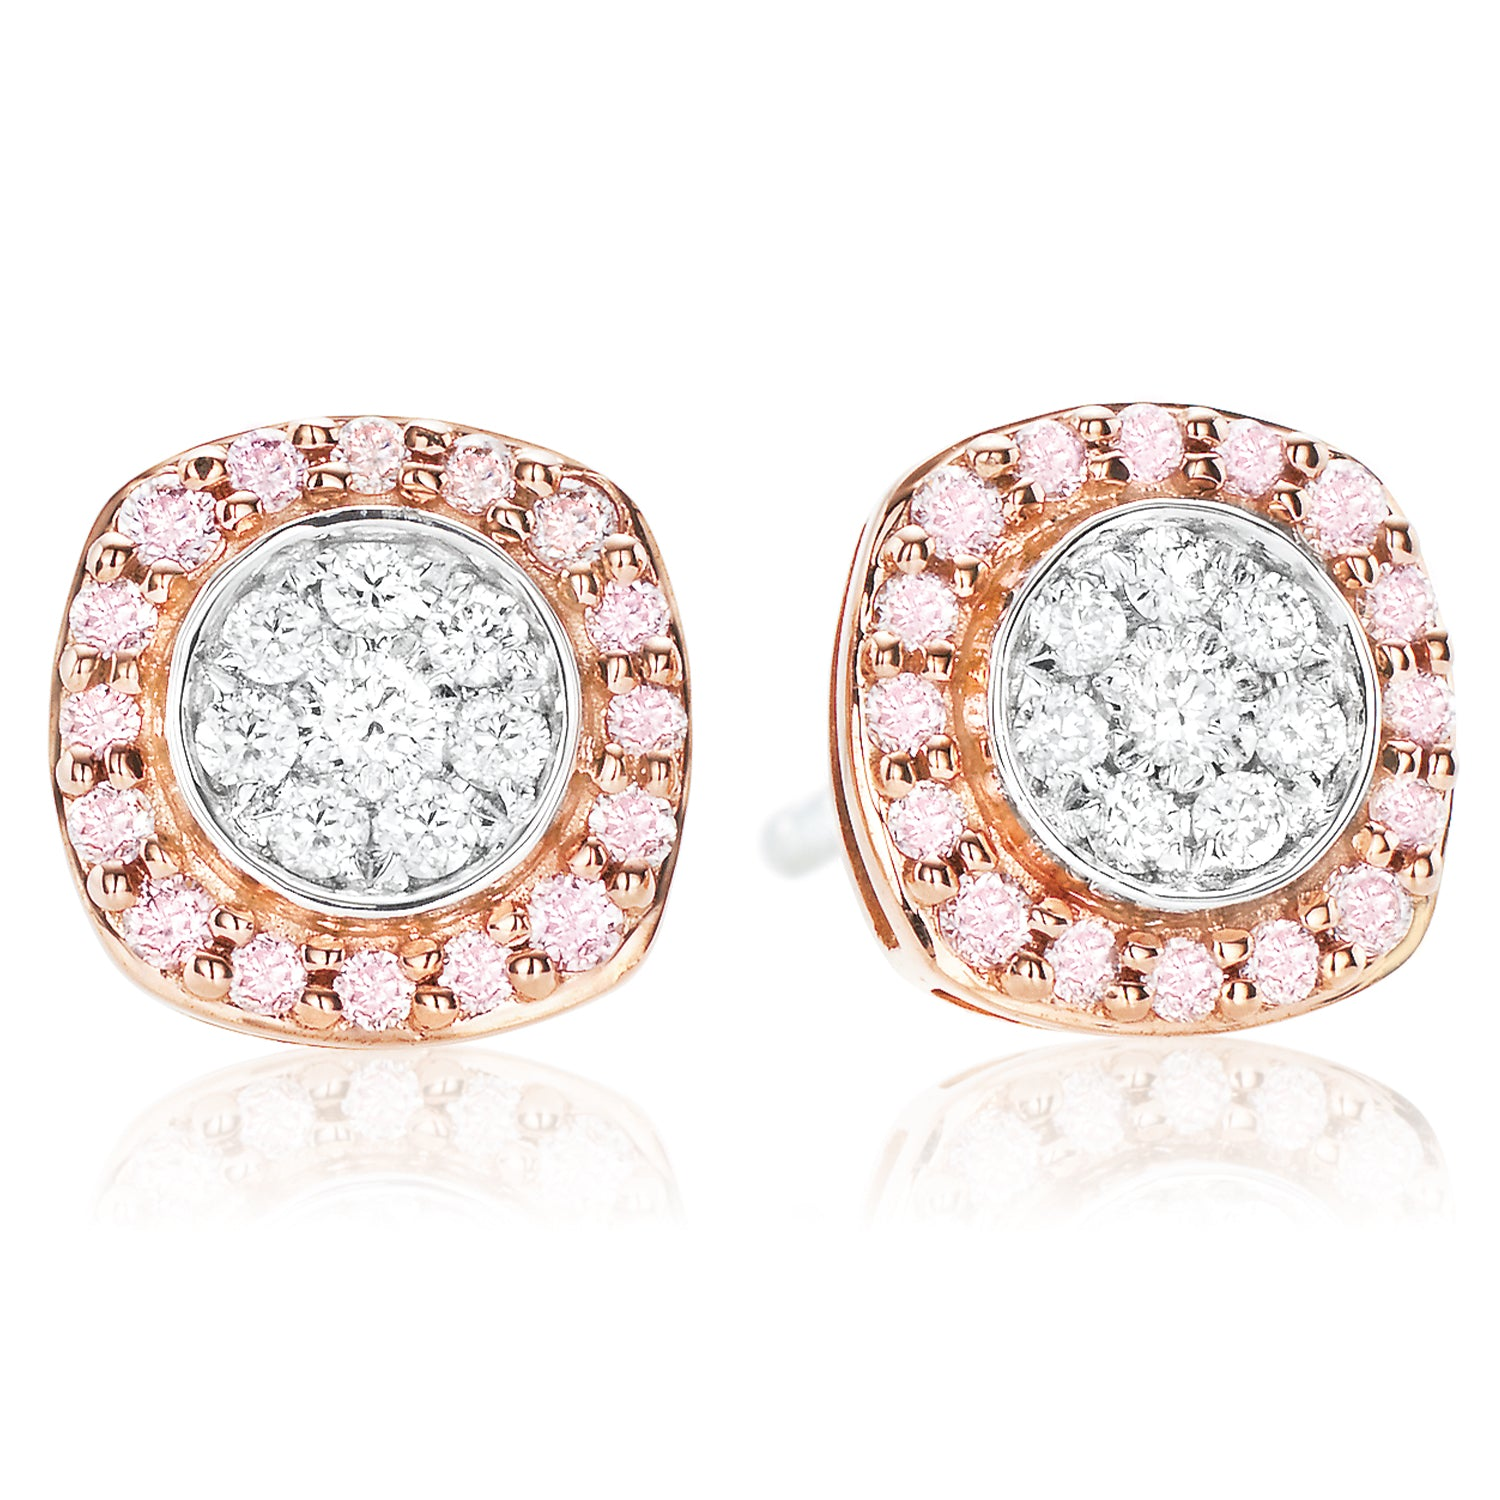 Pink Diamonds 9ct Rose & White Gold Round Brilliant Cut with 1/4 CARAT tw of Diamonds